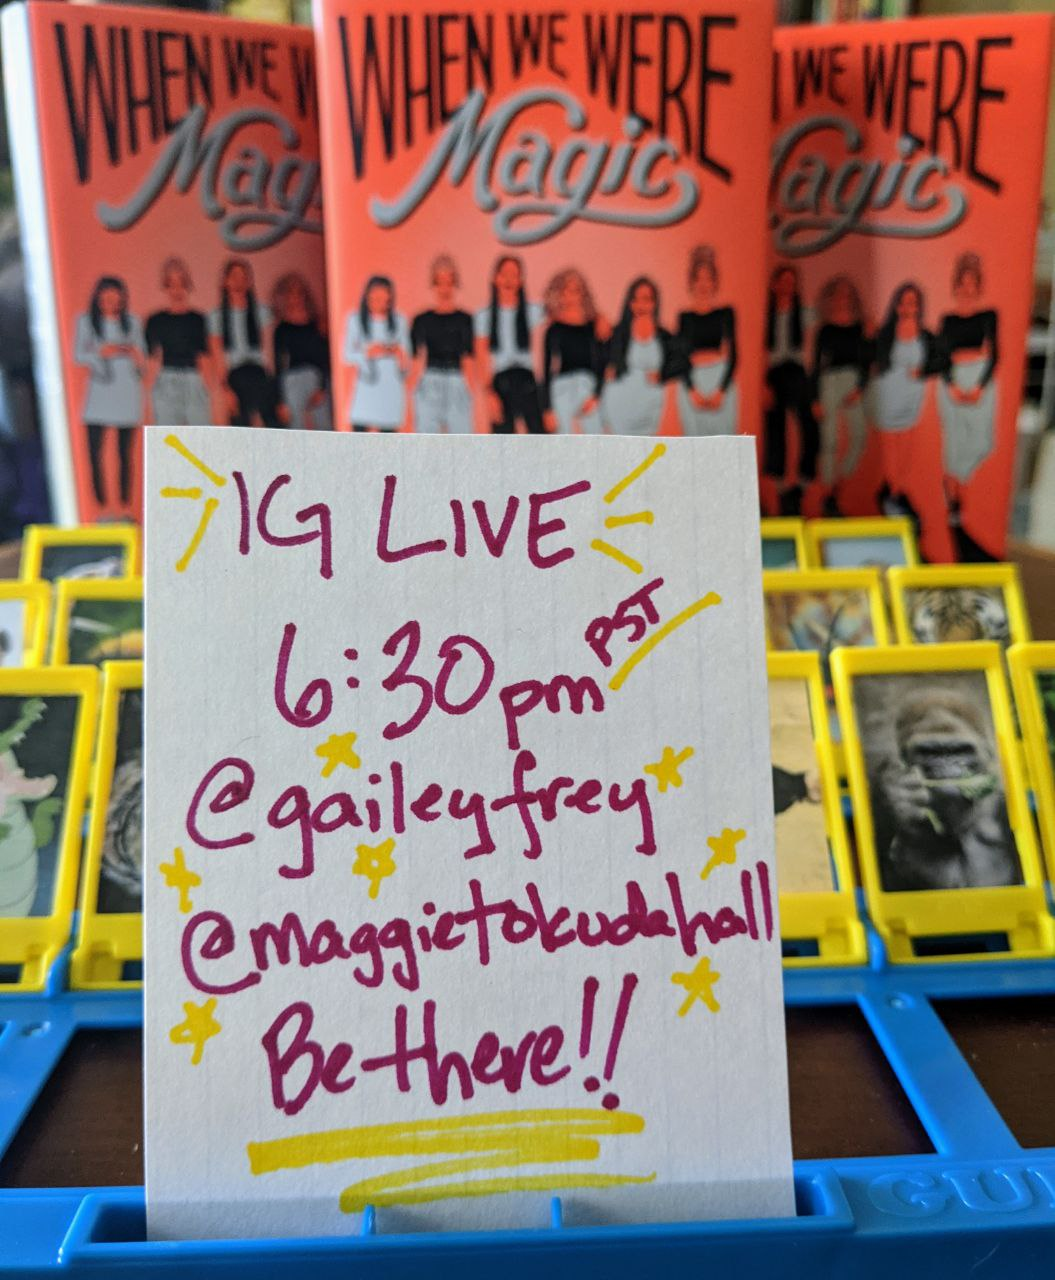 """In the foreground, an index card reading """"IG LIVE 6:30pm PST! @gaileyfrey @maggietokudahall Be there!!"""" In the background, a game of Guess Who featuring animals instead of people."""